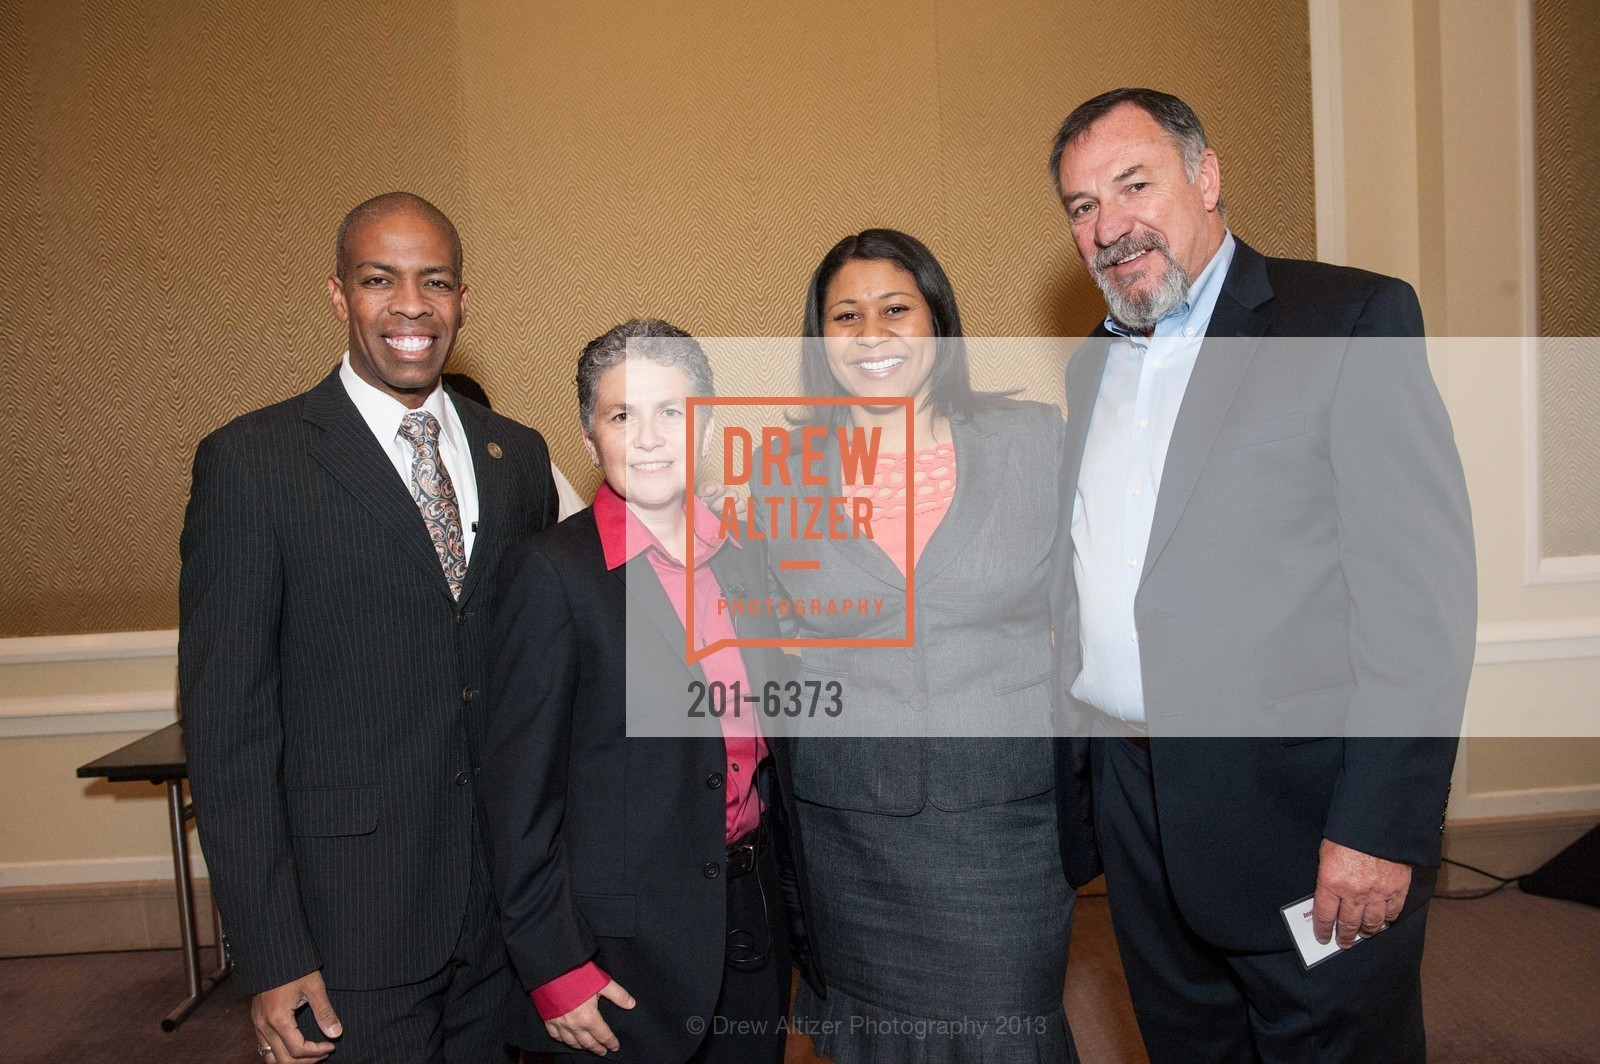 Paul Henderson, Vitka Eisen, London Breed, Chris Cunnie, HEALTH RIGHT 360:  Be the Change 2013, US, November 8th, 2013